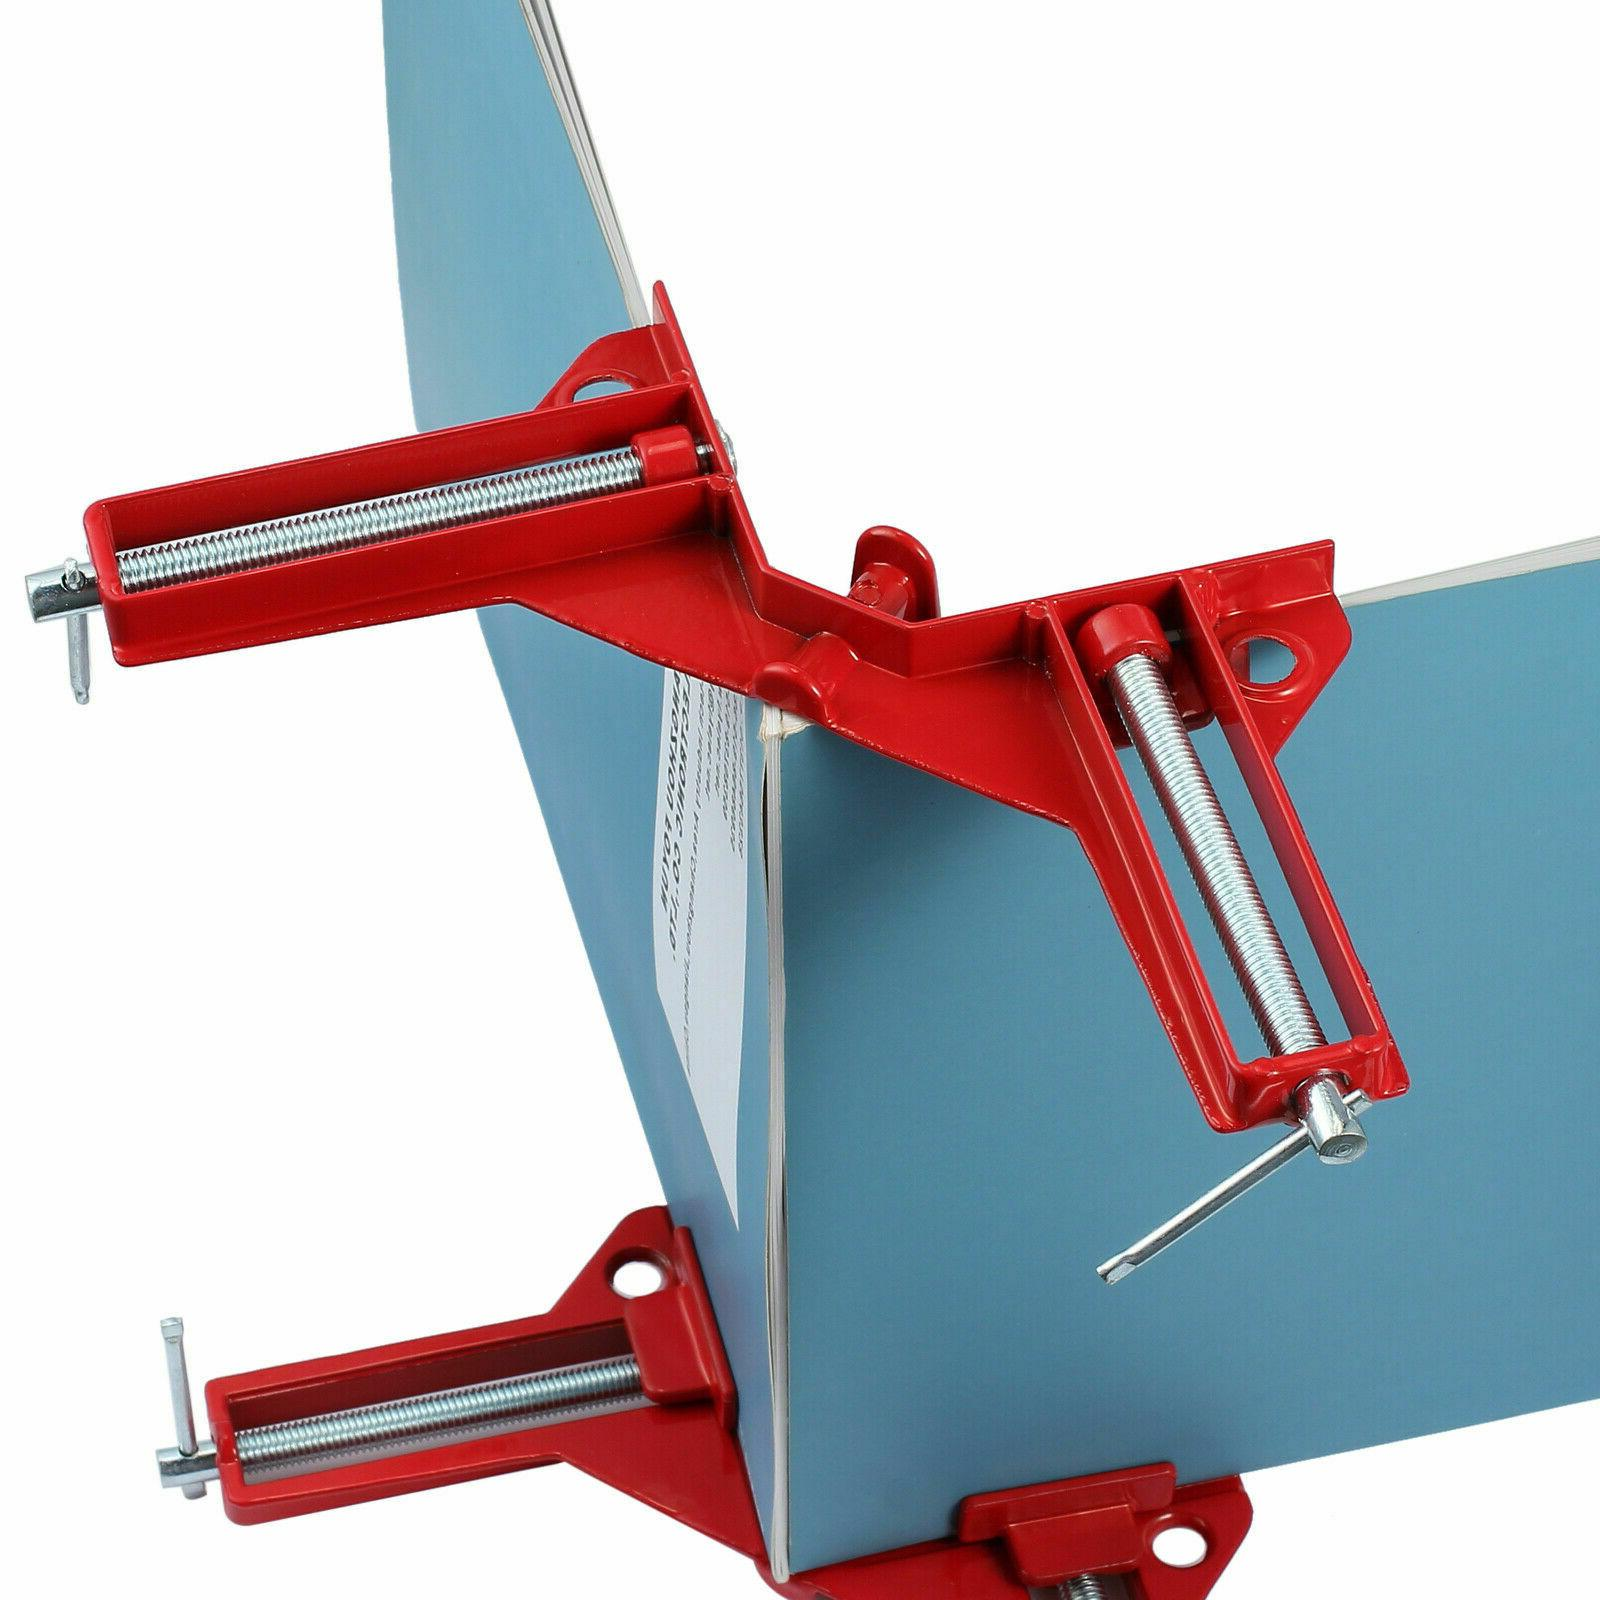 4x 90° Degree Right Angle Picture Frame Corner Clamp Woodworking Kit